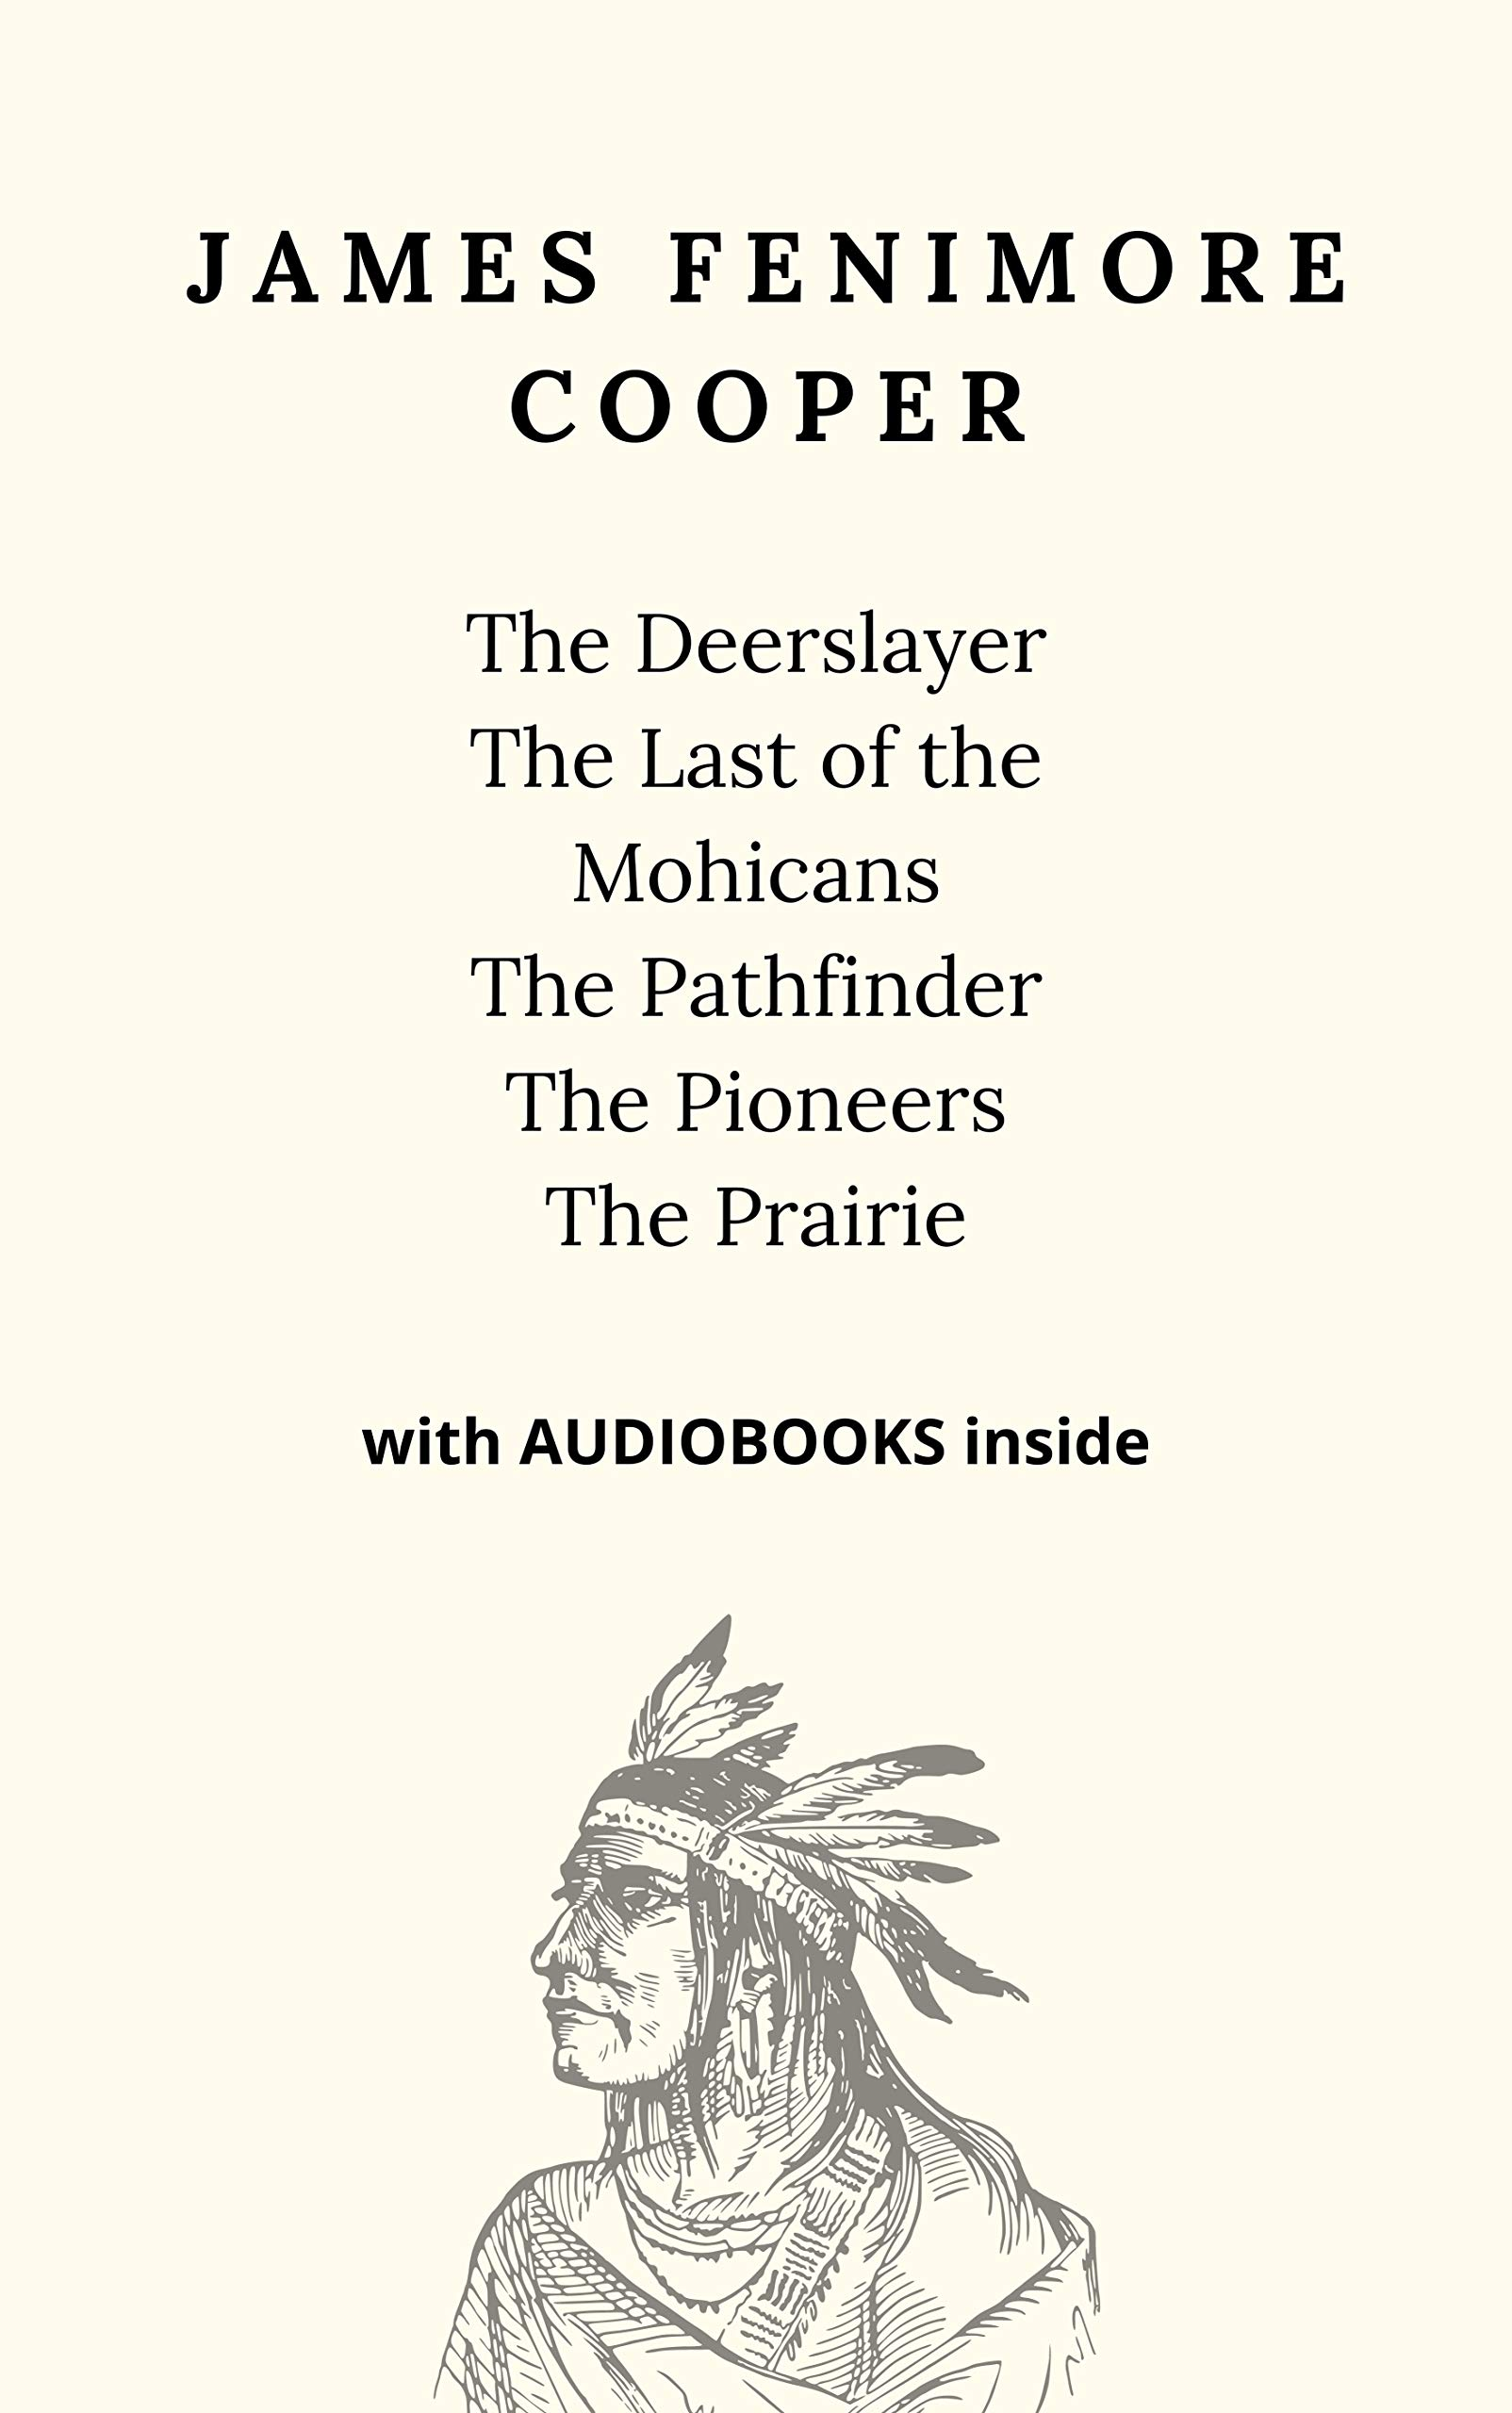 James Fenimore Cooper (5 books) - WITH AUDIOBOOKS INSIDE: The Deerslayer, The Last of the Mohicans, The Pathfinder, The Pioneers, The Prairie